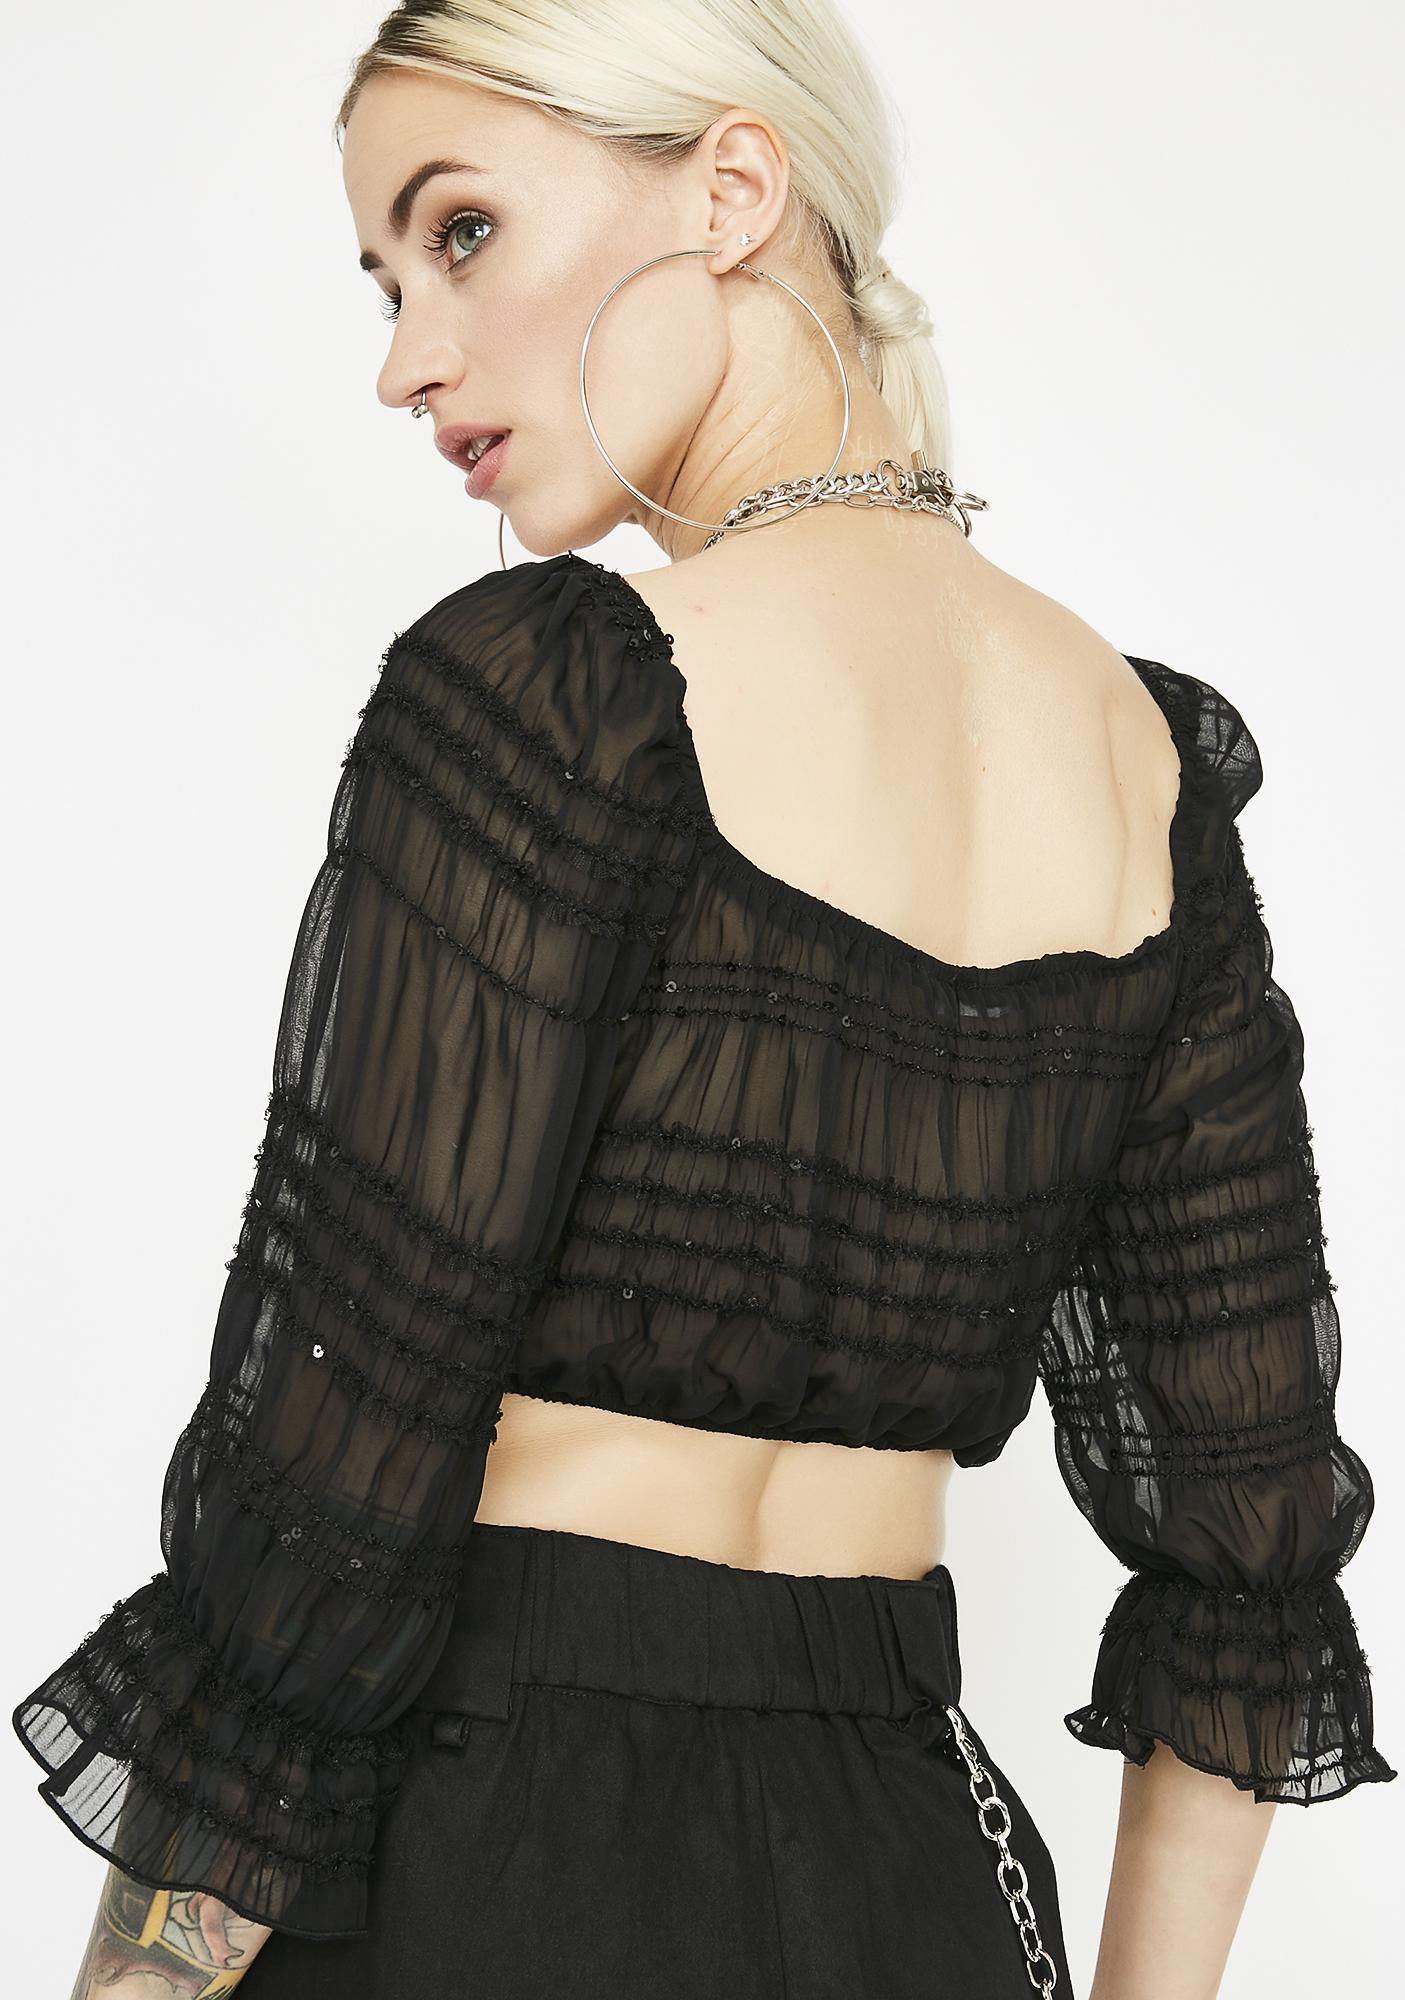 Shady Woman Sheer Top